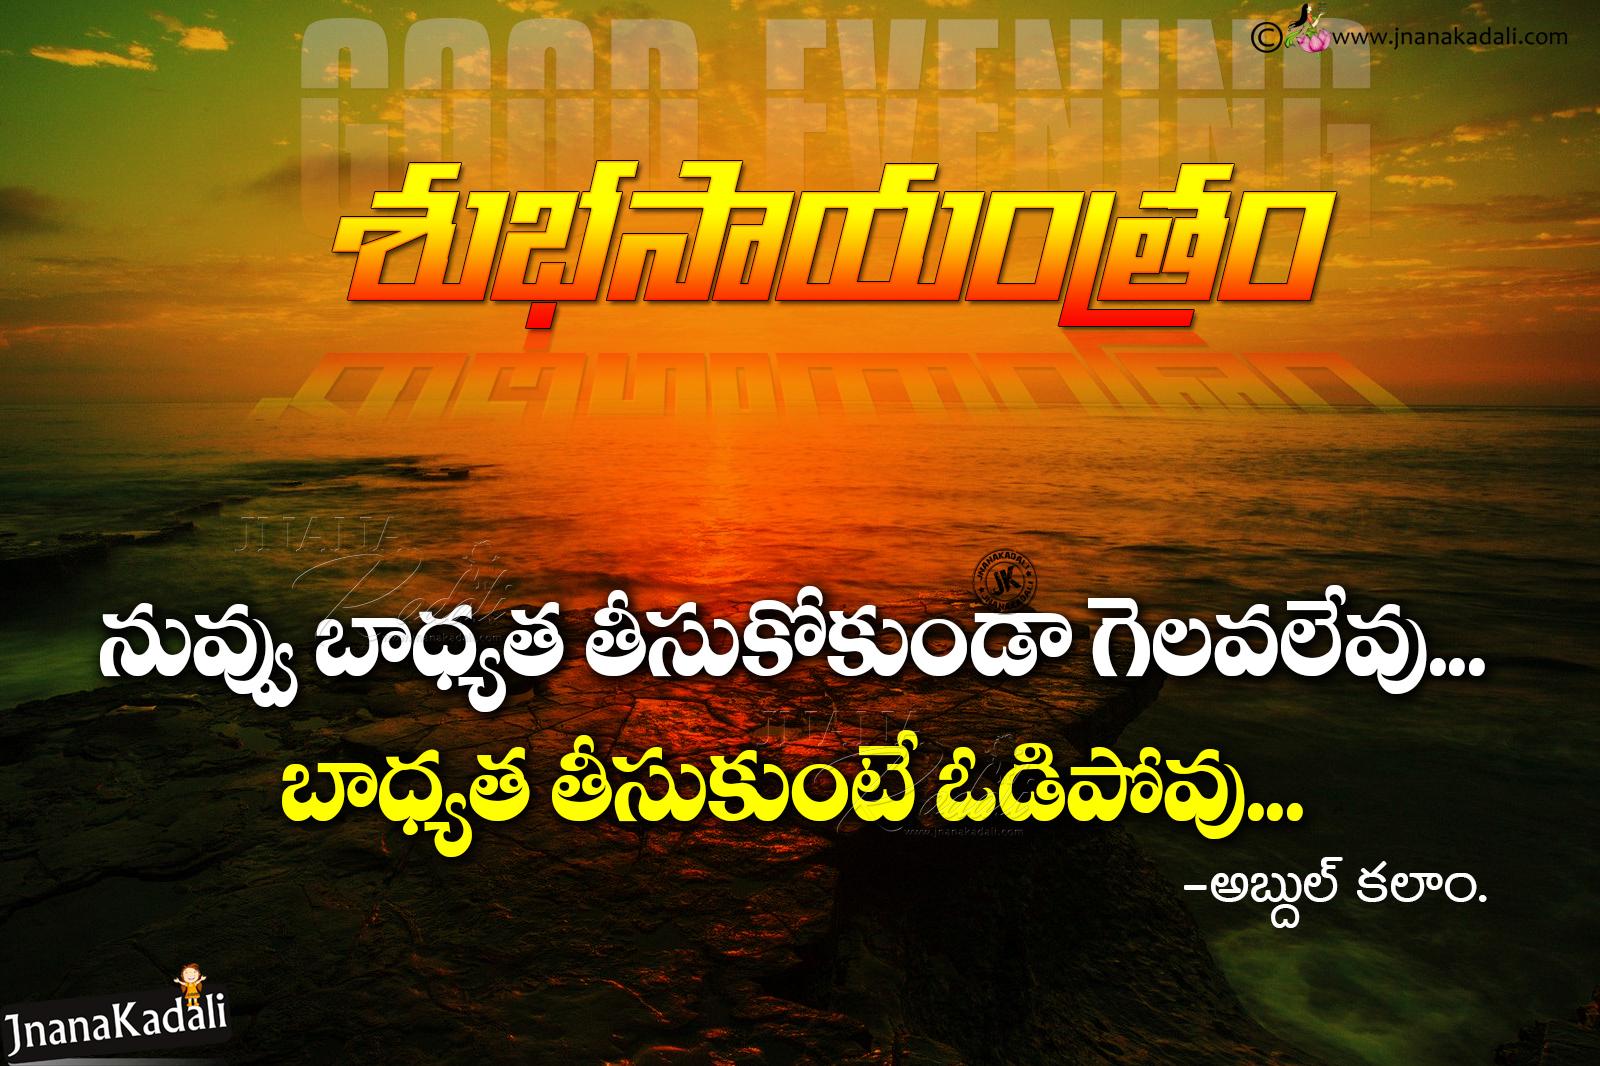 Abdul Kalam Inspirational Sayings With Good Evening Greetings In